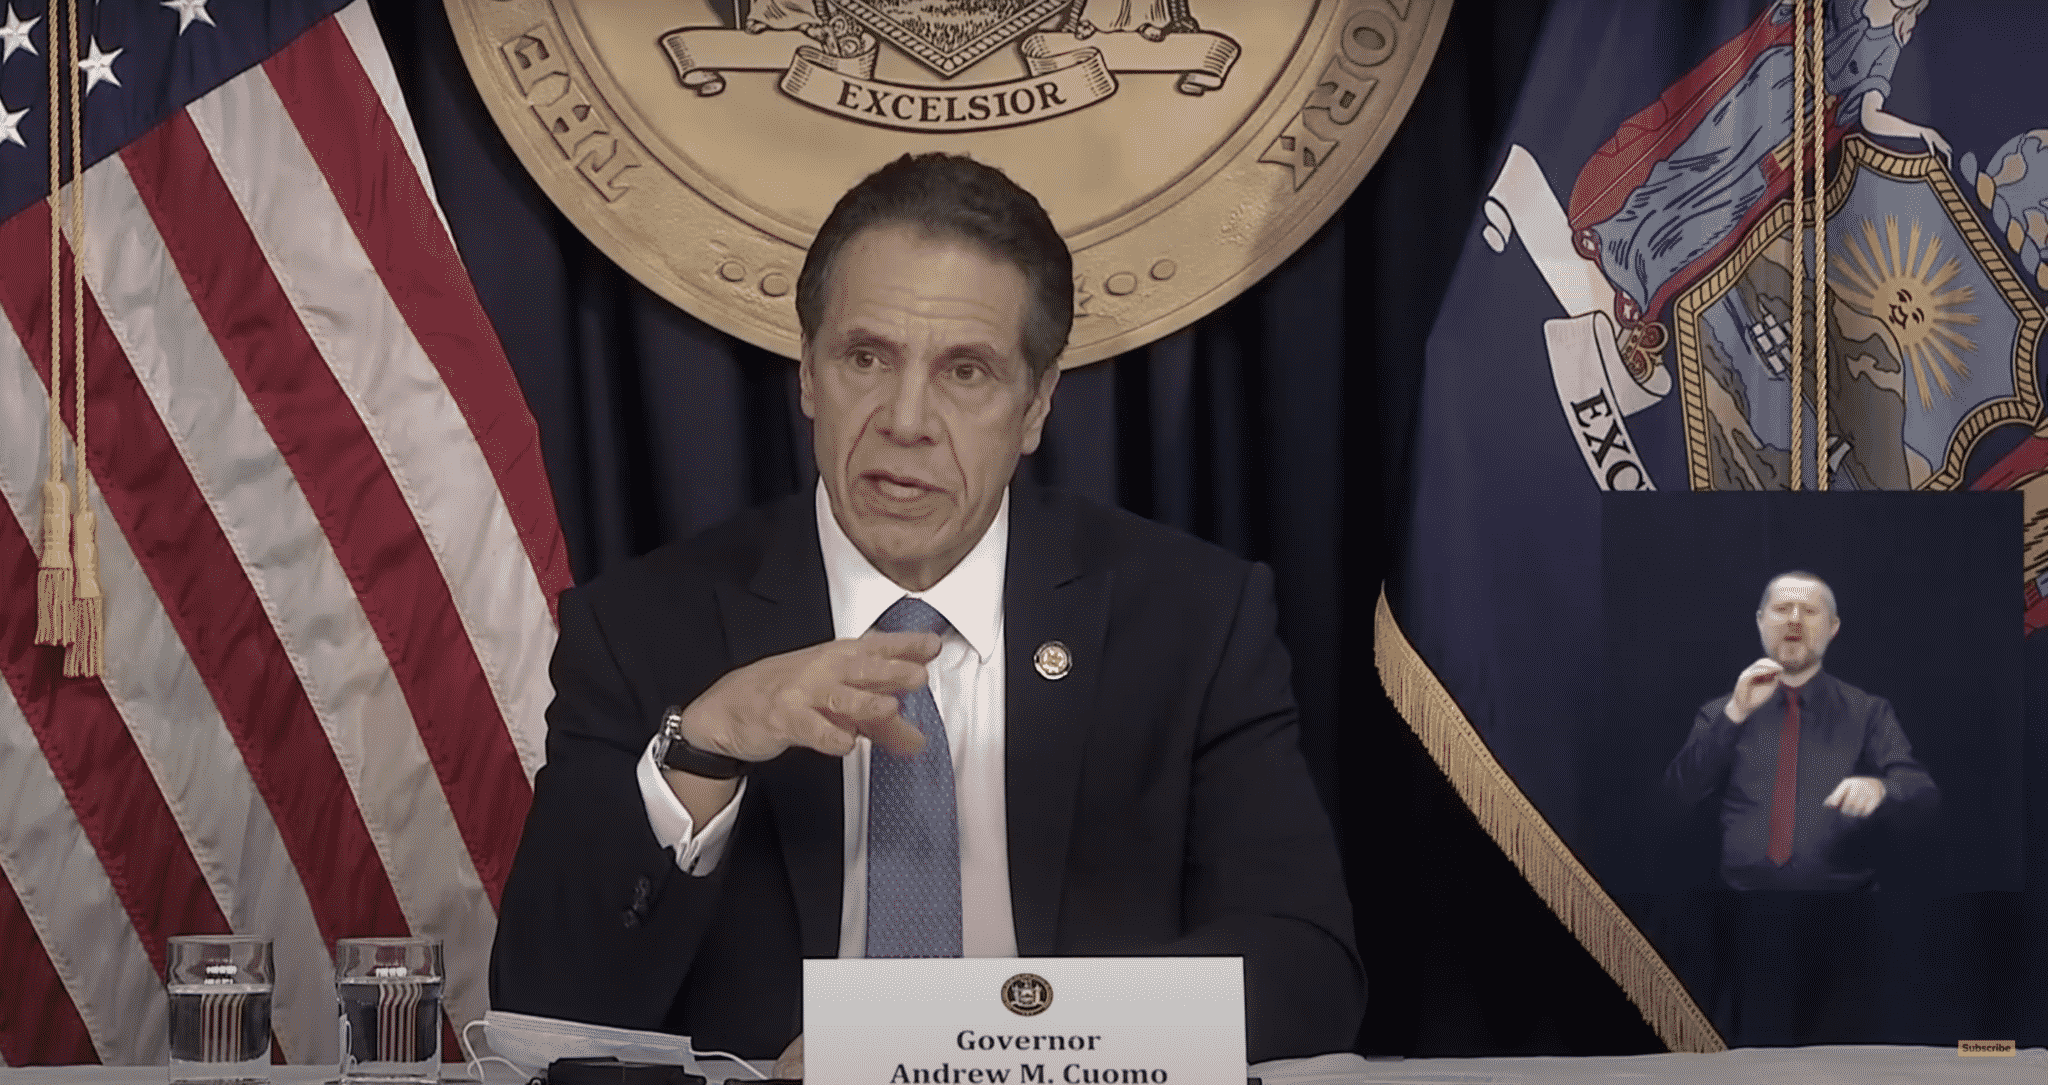 Cuomo: A Sheriff Who Refuses To Enforce COVID Restrictions Is a 'Dictator'